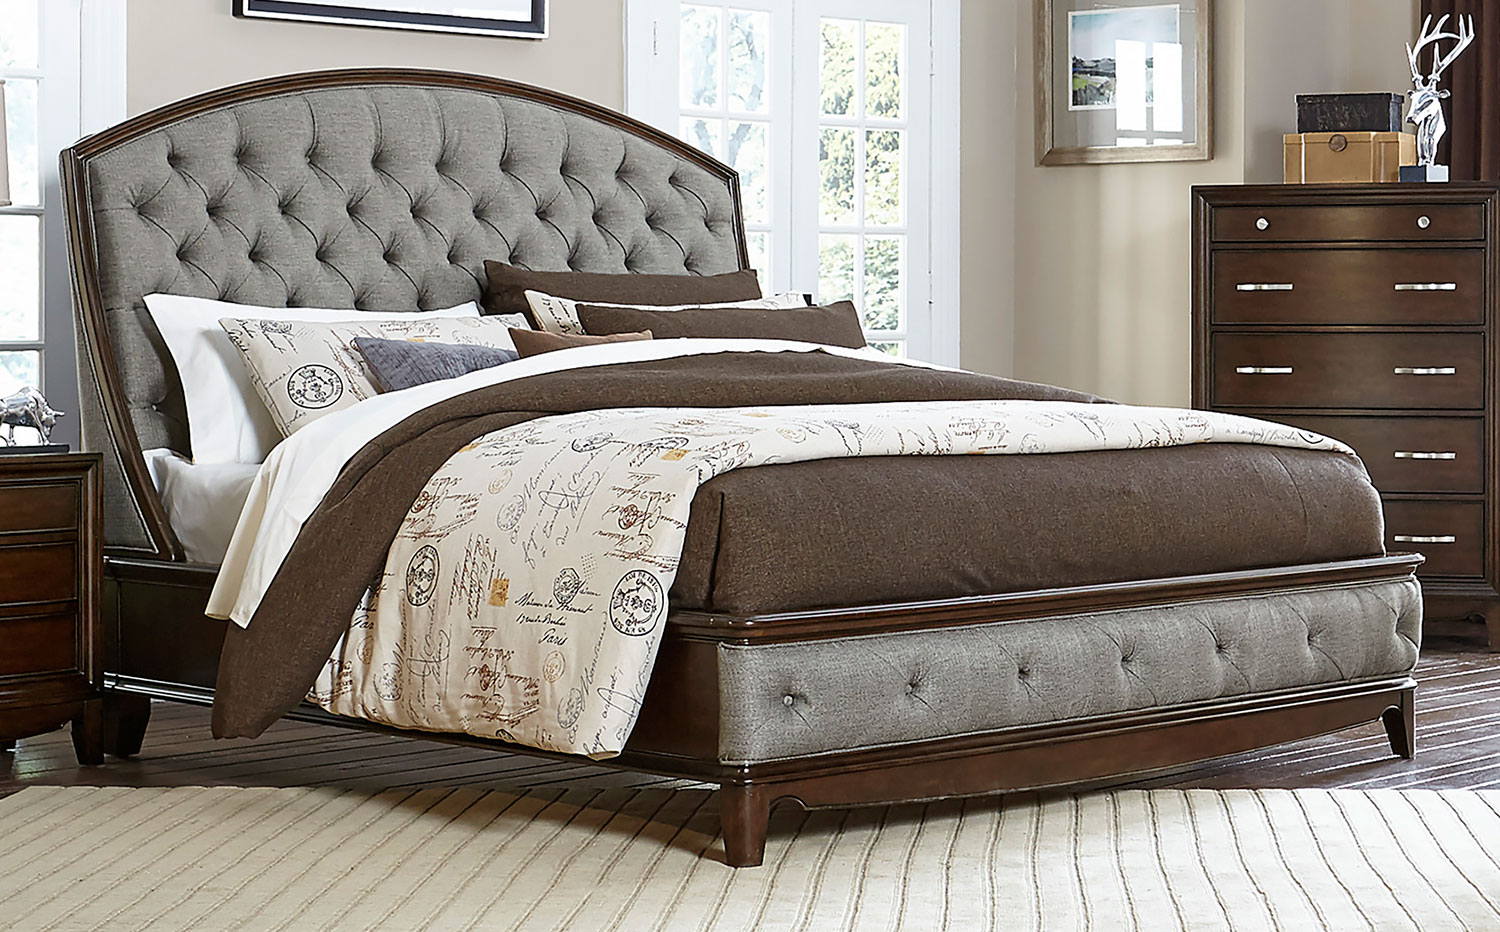 Homelegance Yorklyn Button Tufted Upholstered Sleigh Bed - Cherry